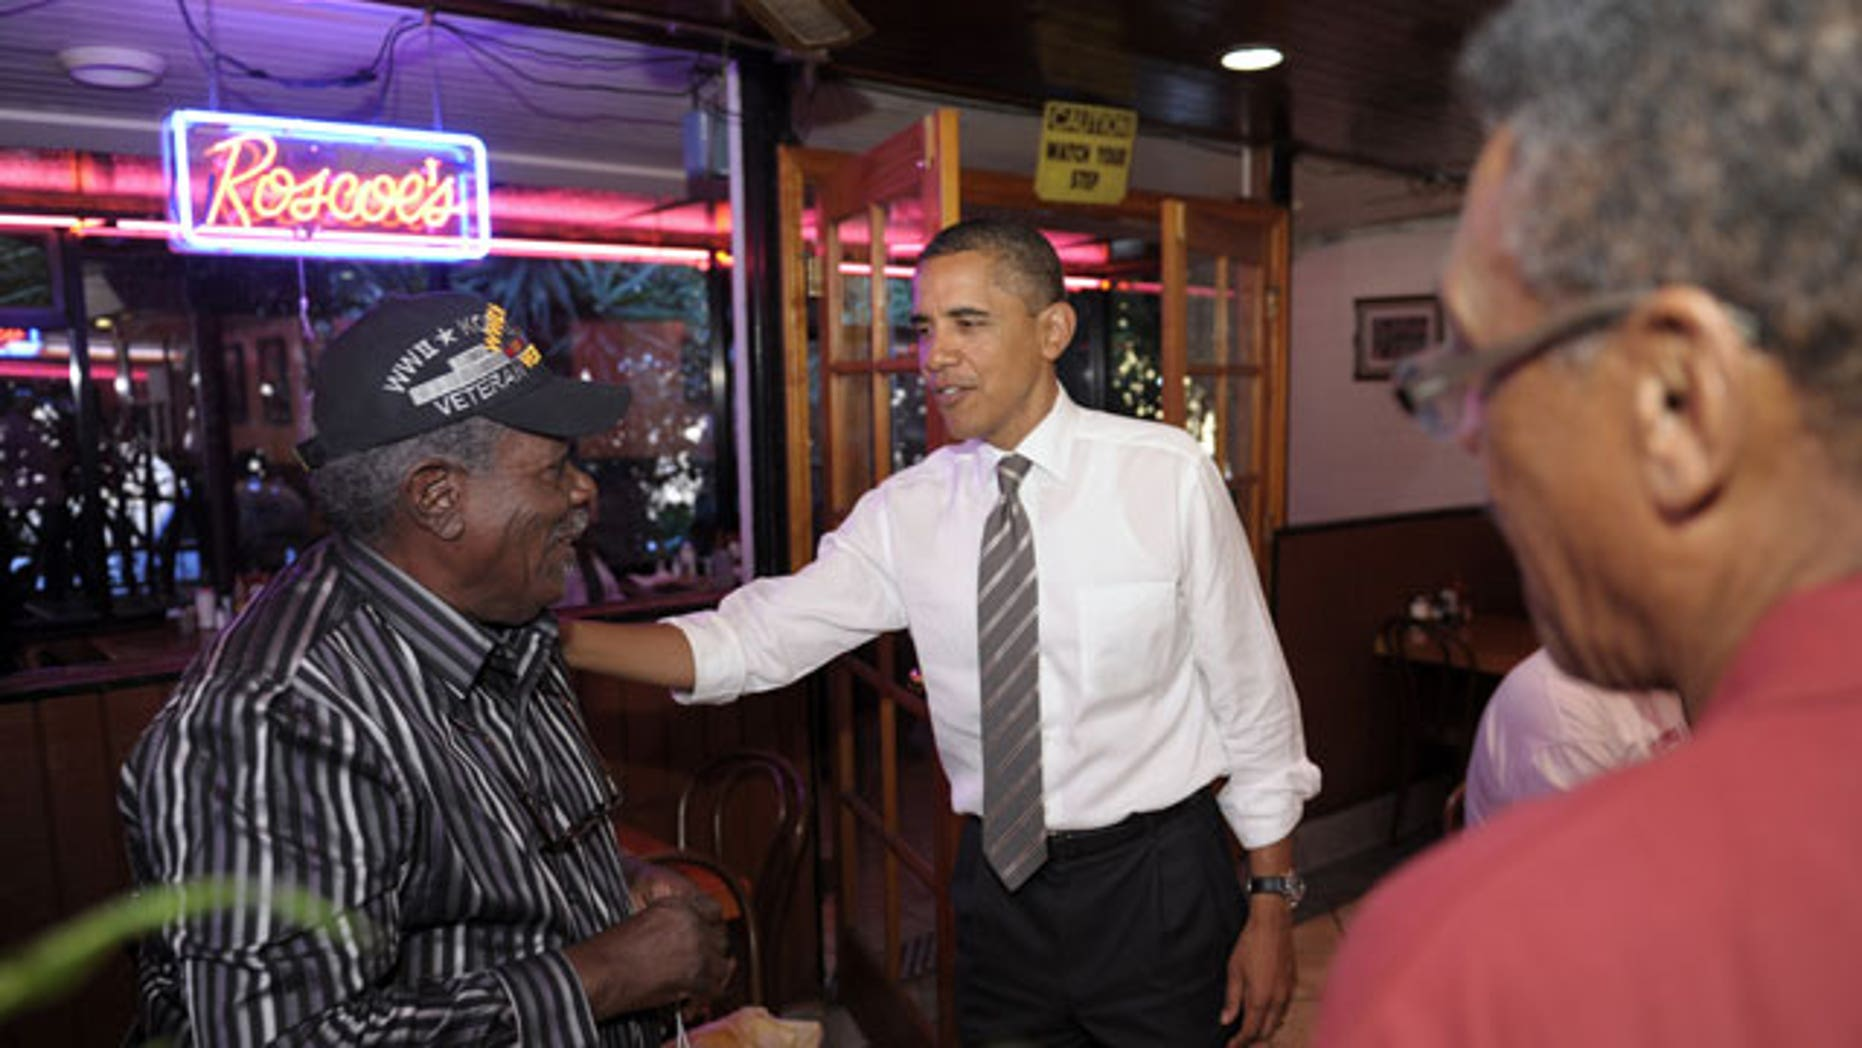 October 24: President Barack Obama greets patrons as he stops for a snack at Roscoe's House of Chicken and Waffles in Los Angeles.